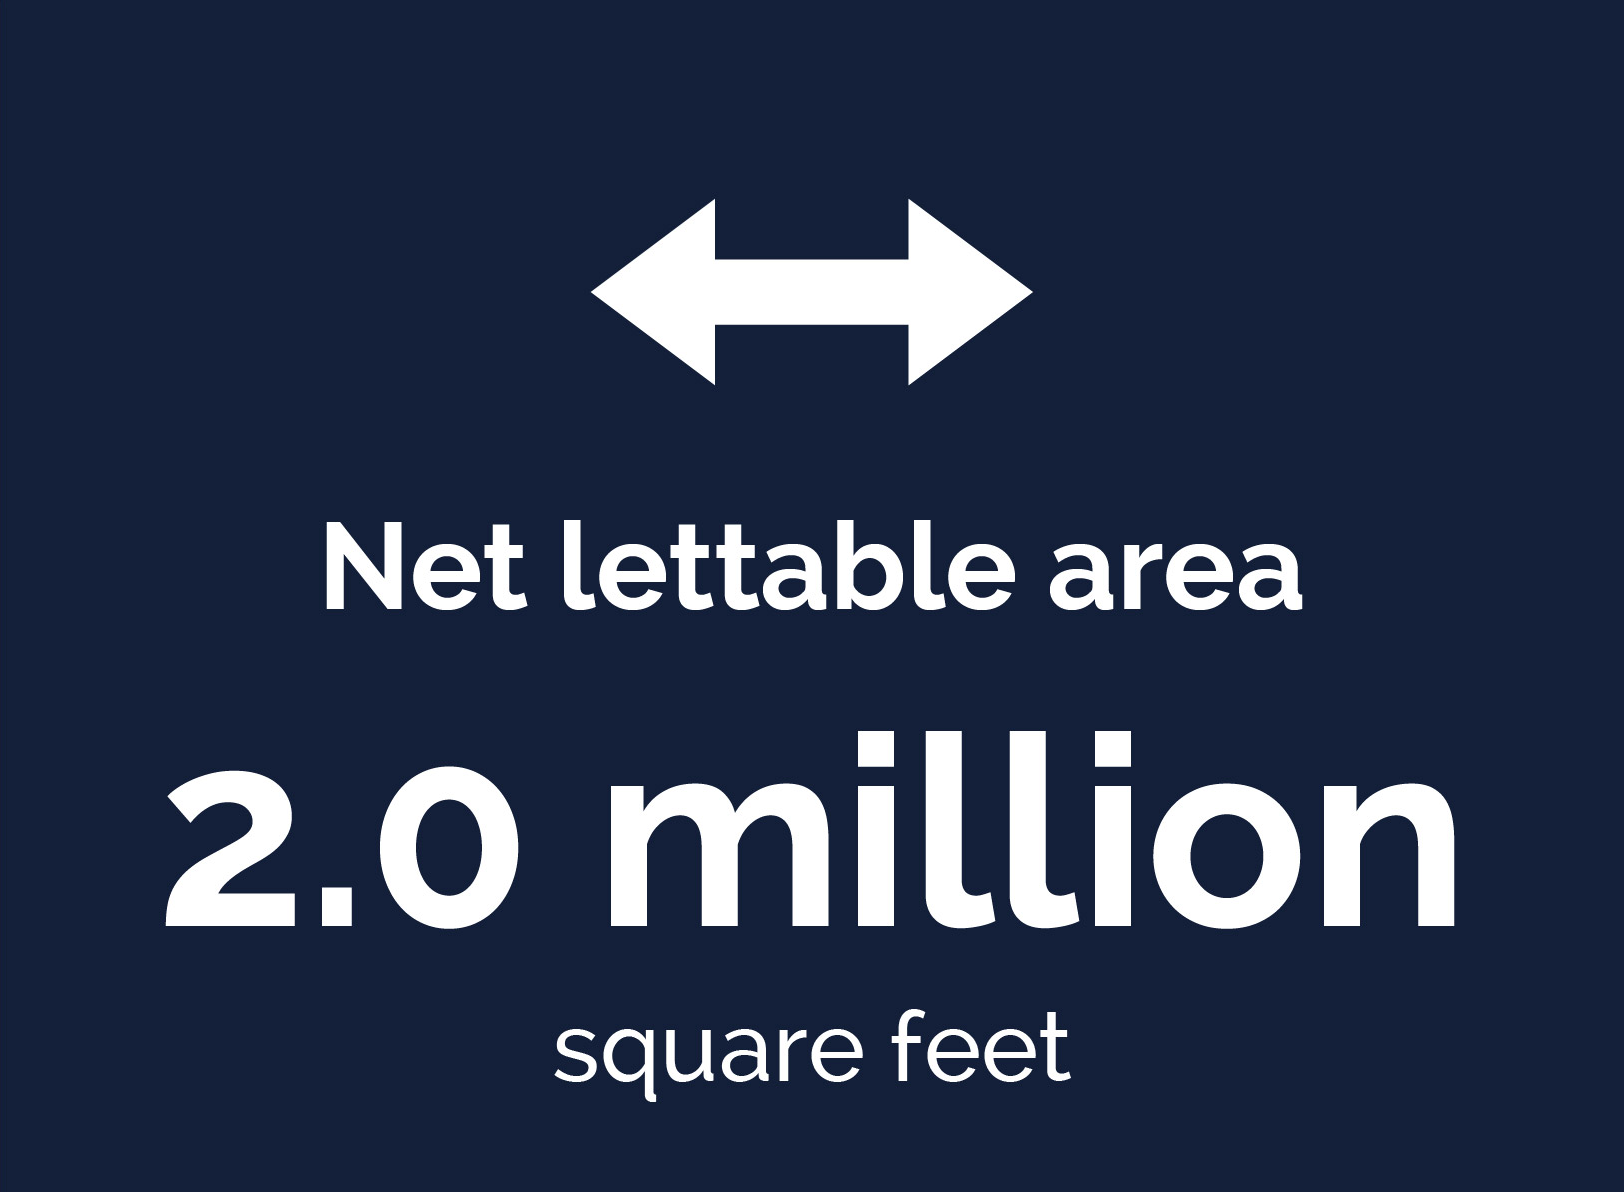 Net lettable area